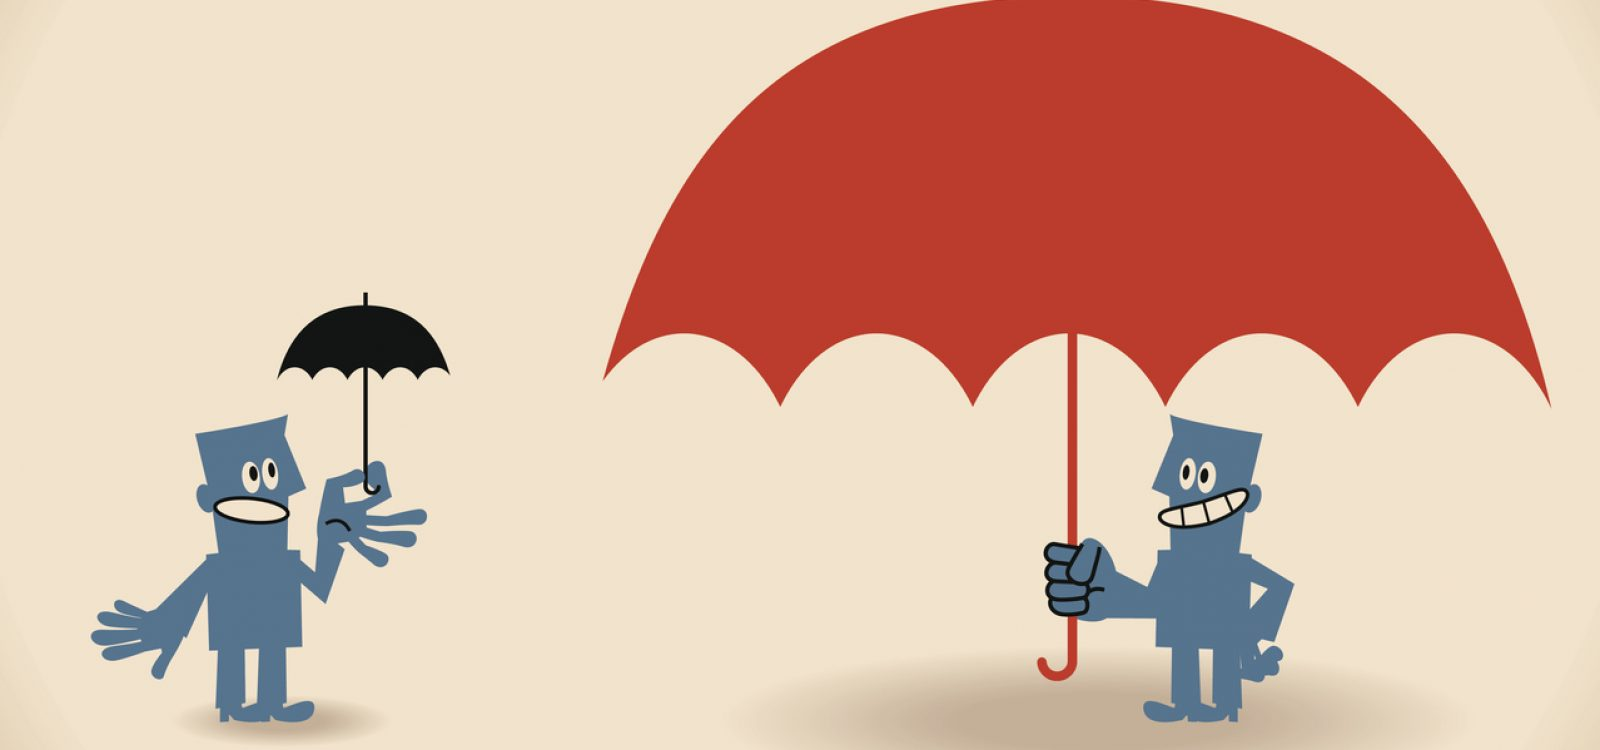 Loss Coverage: Why Insurance Works Better with Some Adverse Selection